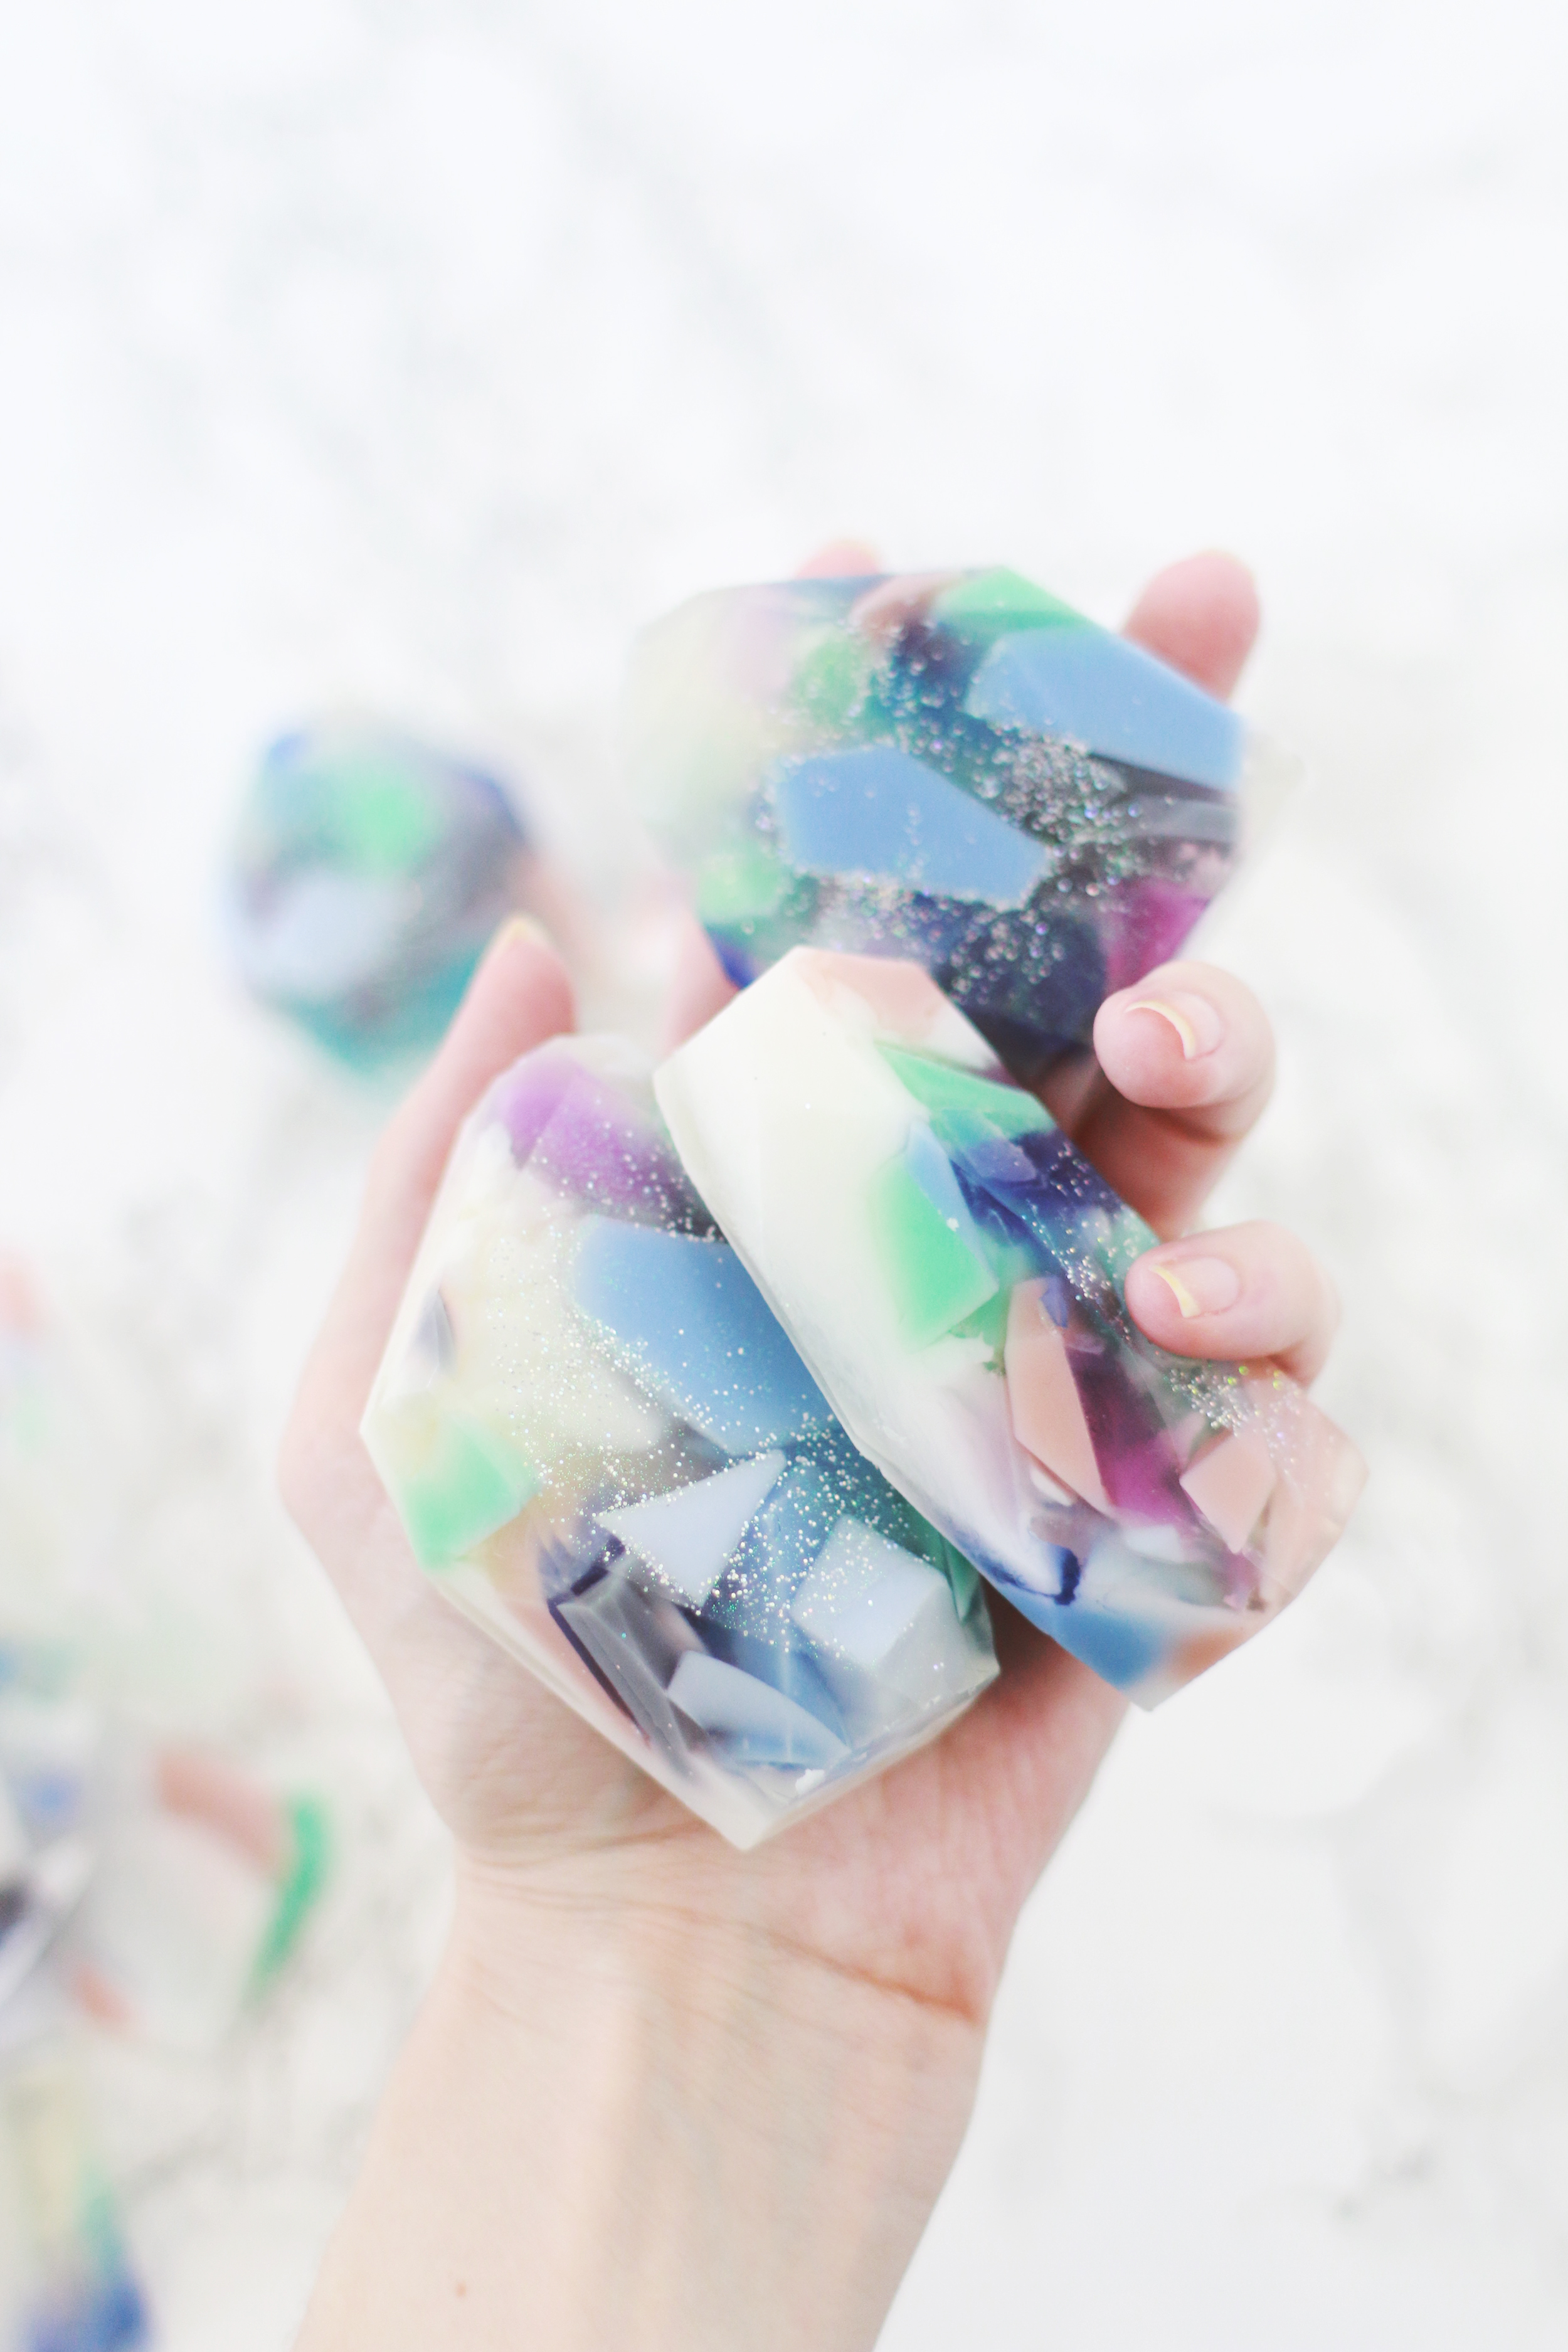 Rock Gem Soap